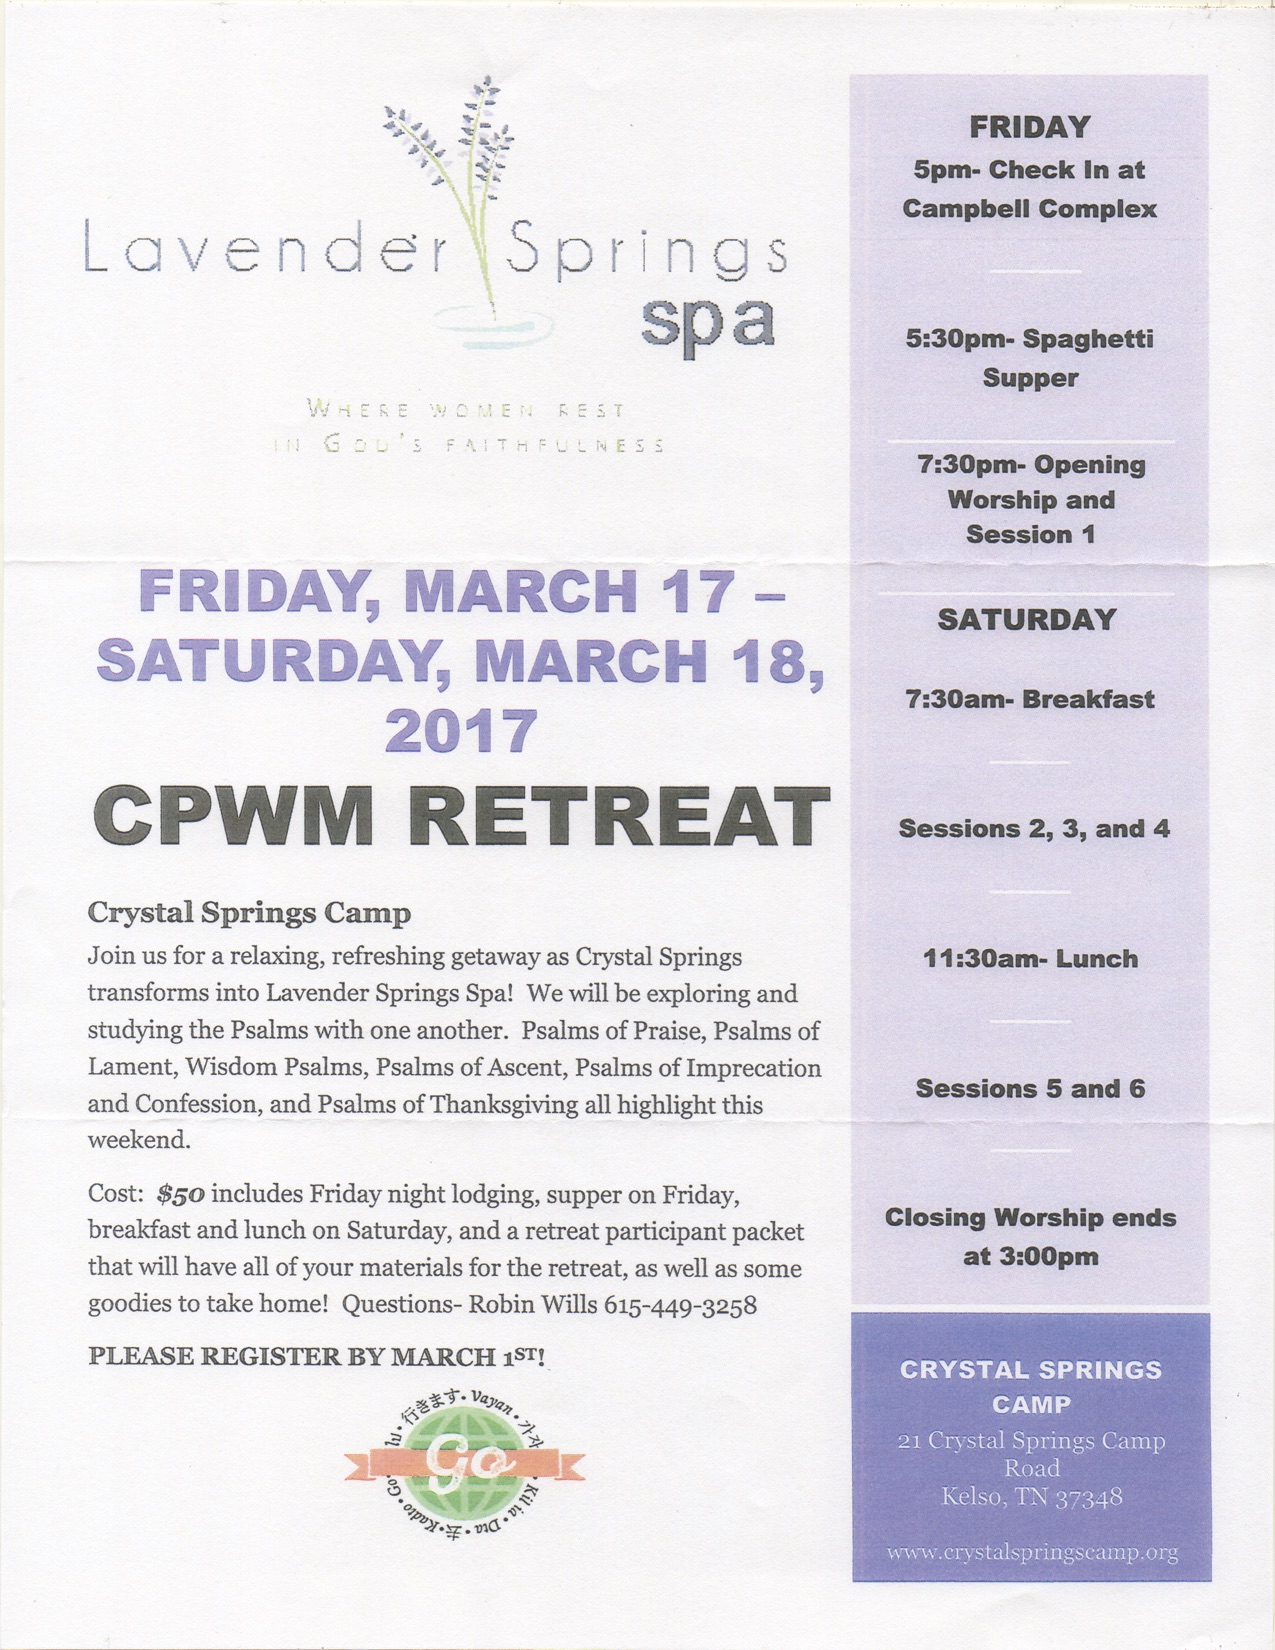 CPWM Retreat